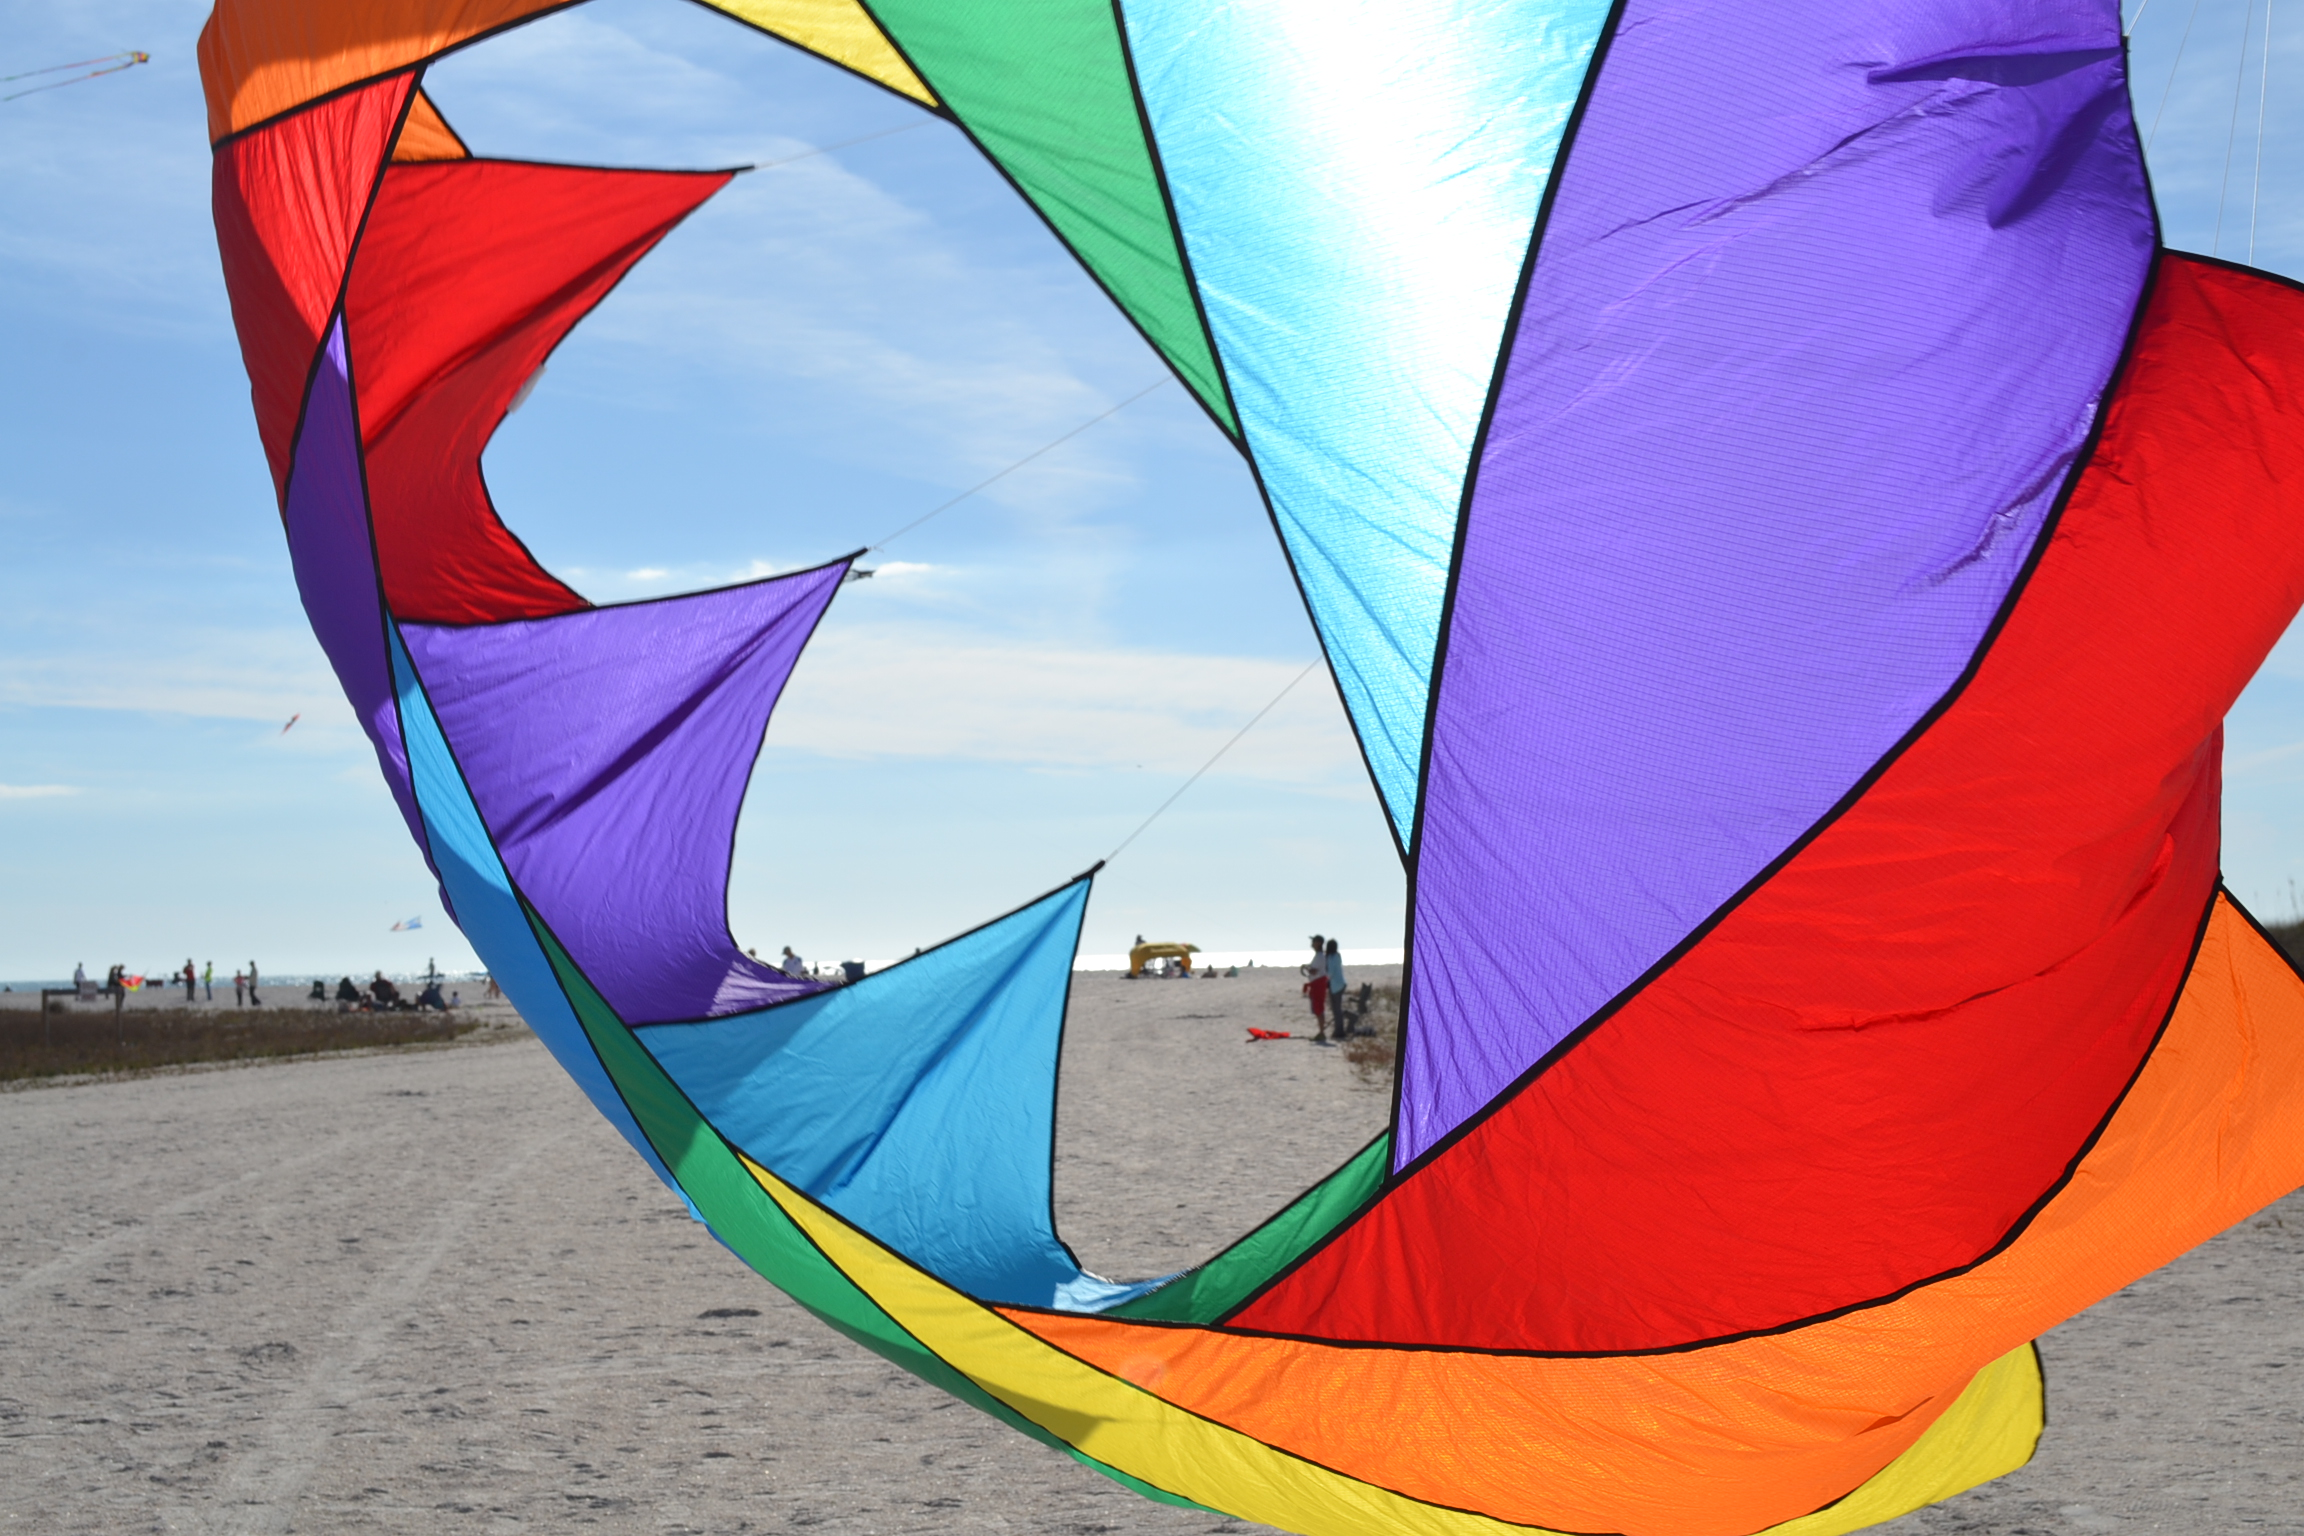 Treasure Island Kite Festival and Sport Kite Competition